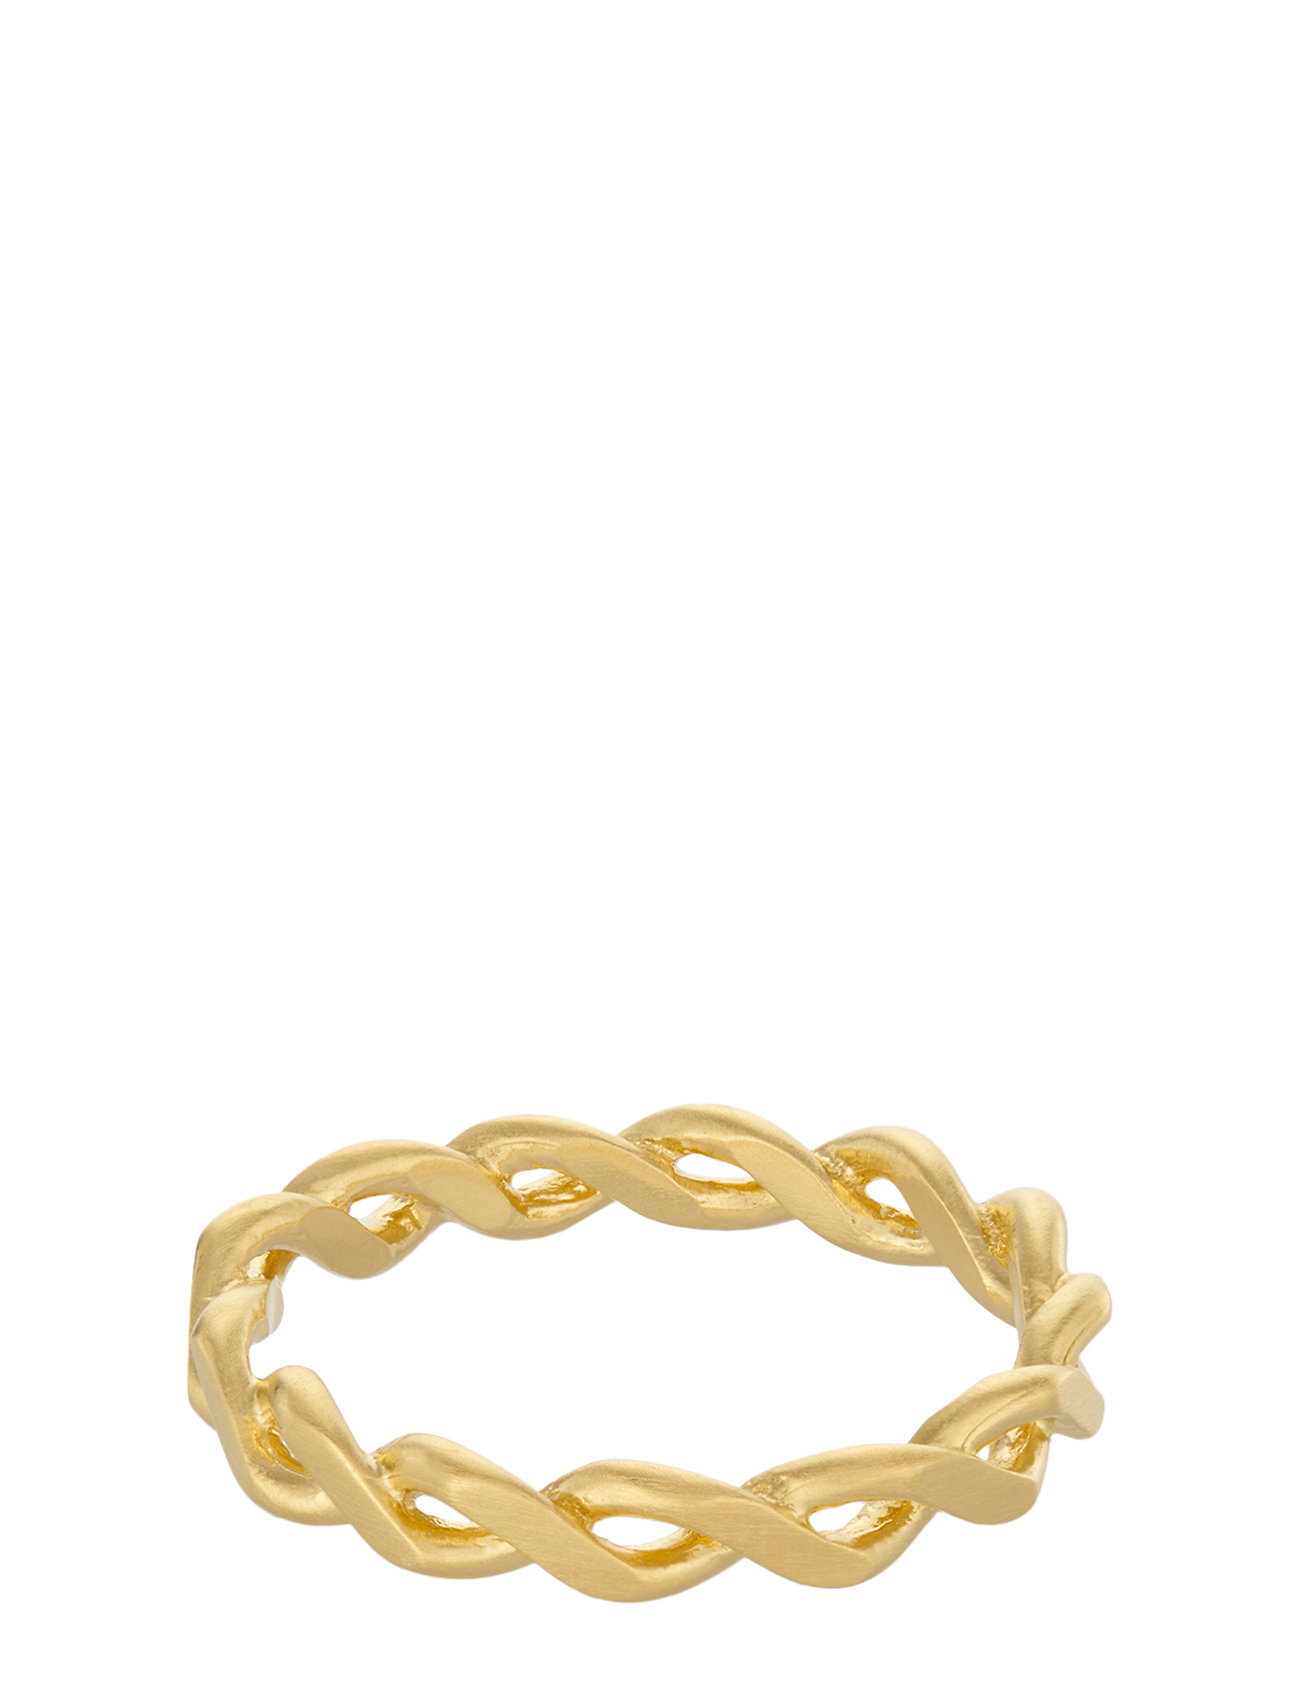 Pernille Corydon Silom Ring - GOLD PLATED